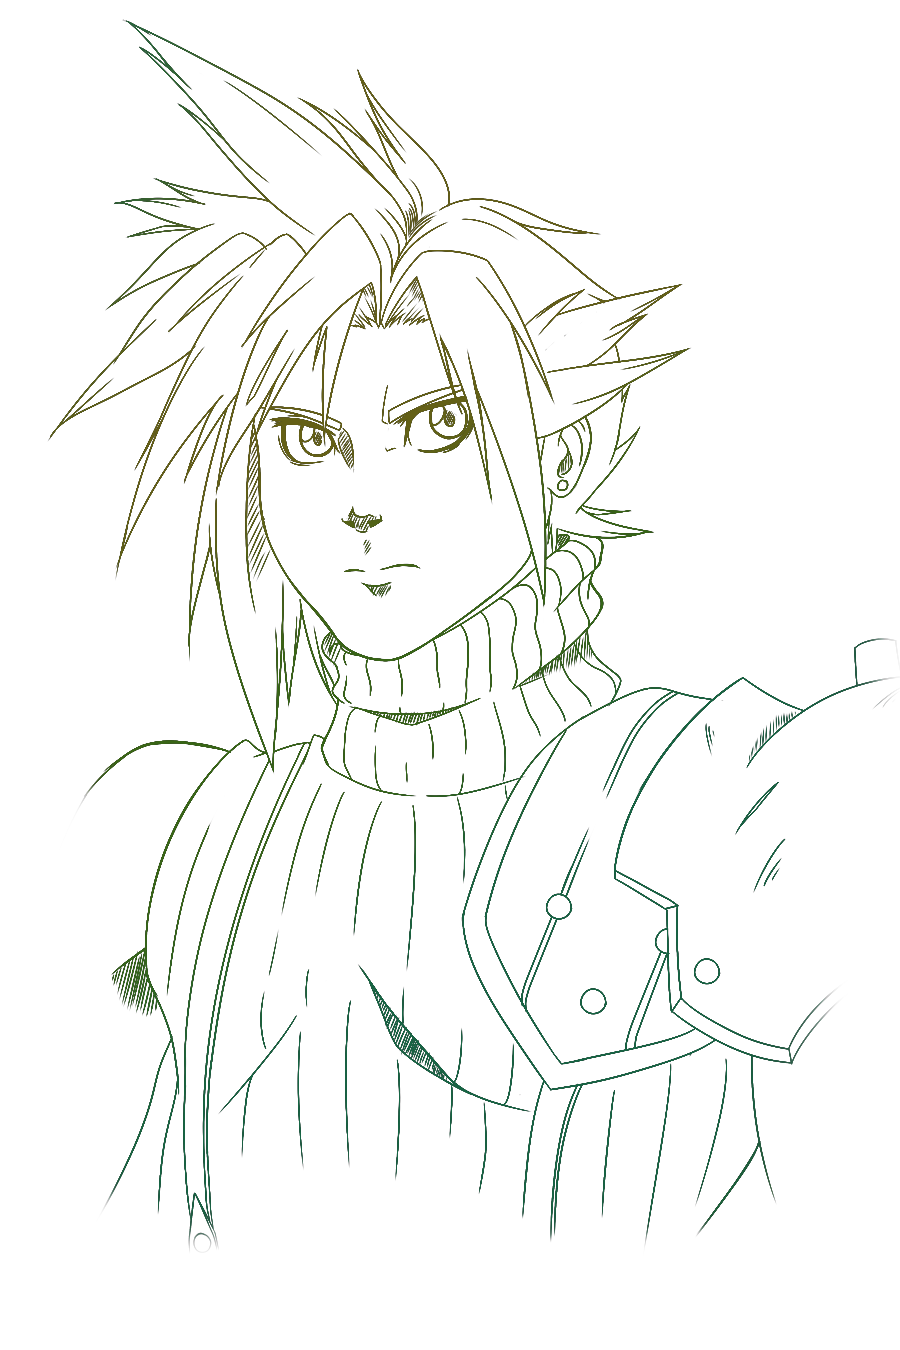 Final fantasy vii 15th anniversary cloud strife by for Final fantasy coloring pages